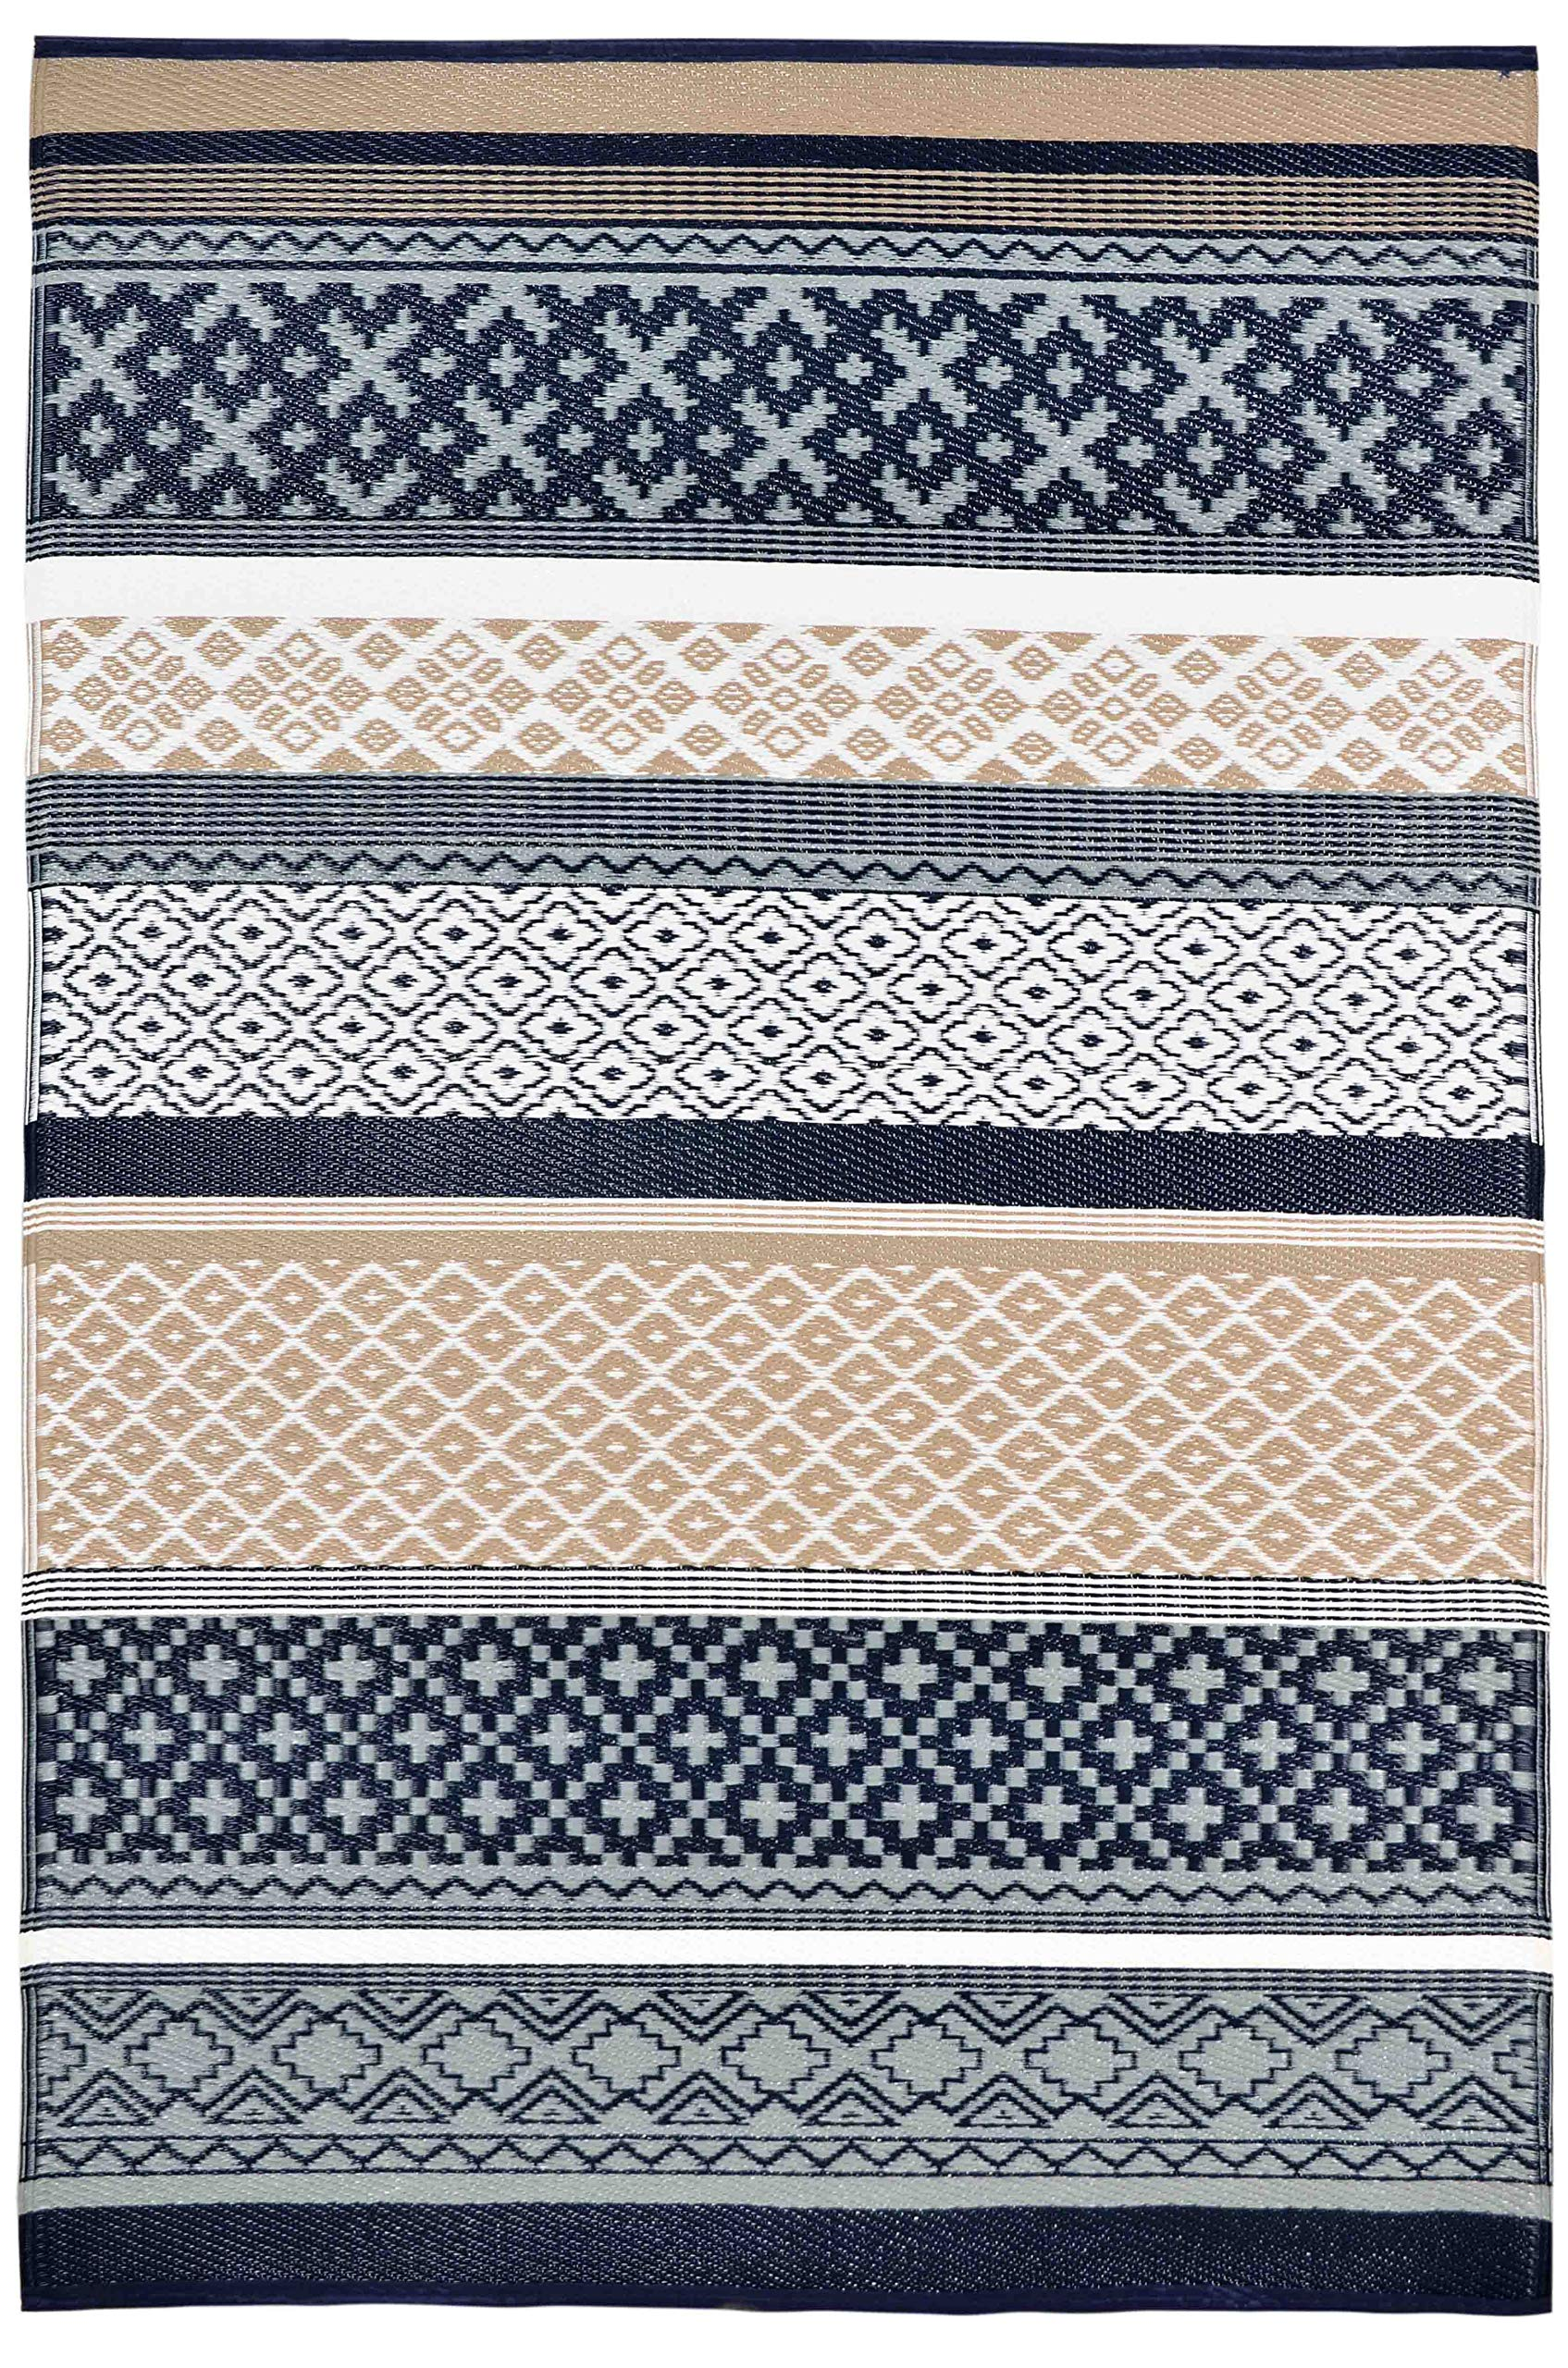 Lightweight Outdoor Reversible Durable Plastic Rug (8x10, Prime Navy/Taupe)